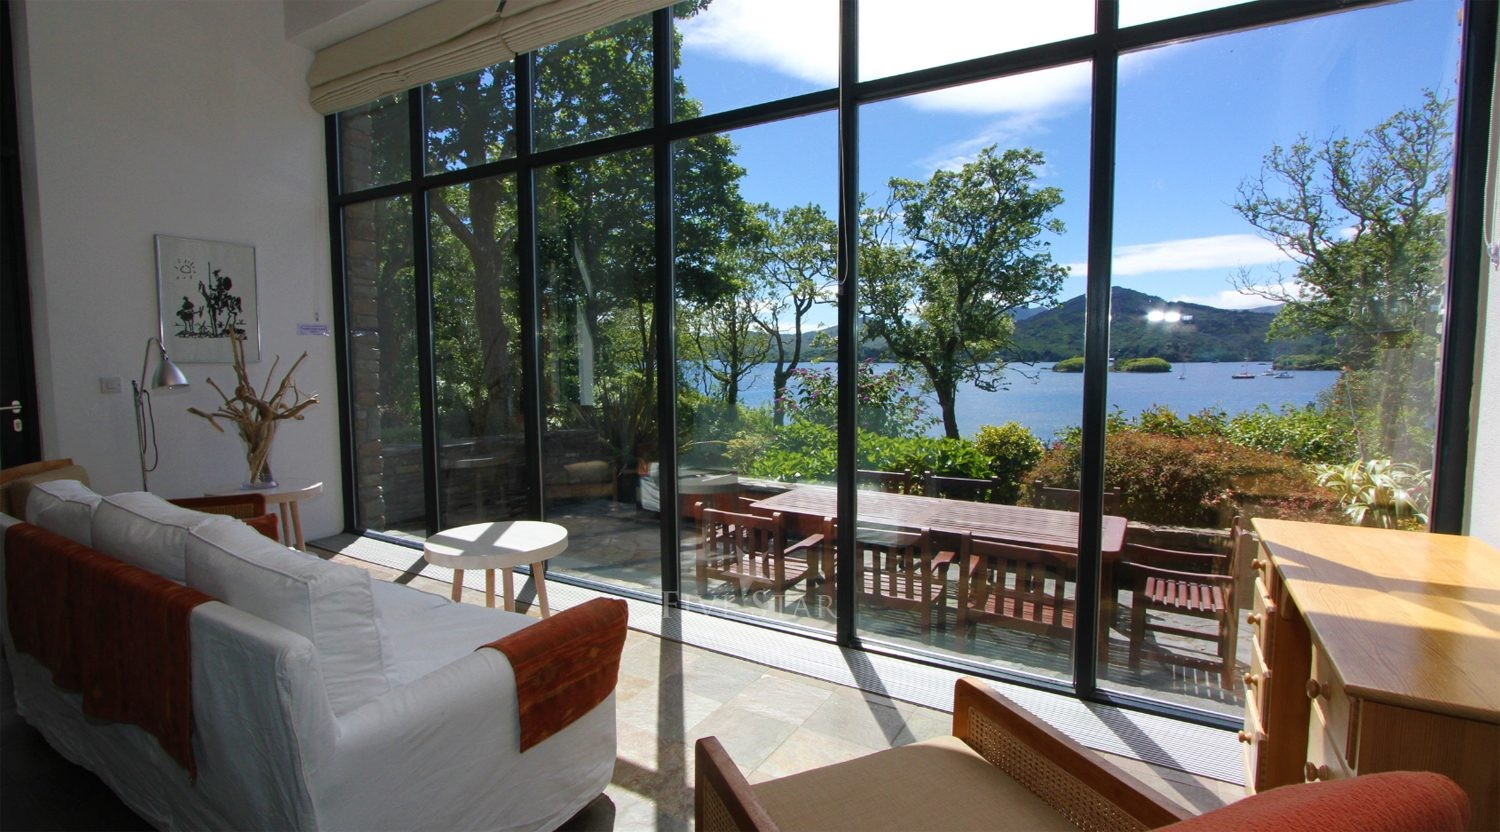 #7 Silver Birch Glenfarriff Bay:Cork (11 Bedrooms)